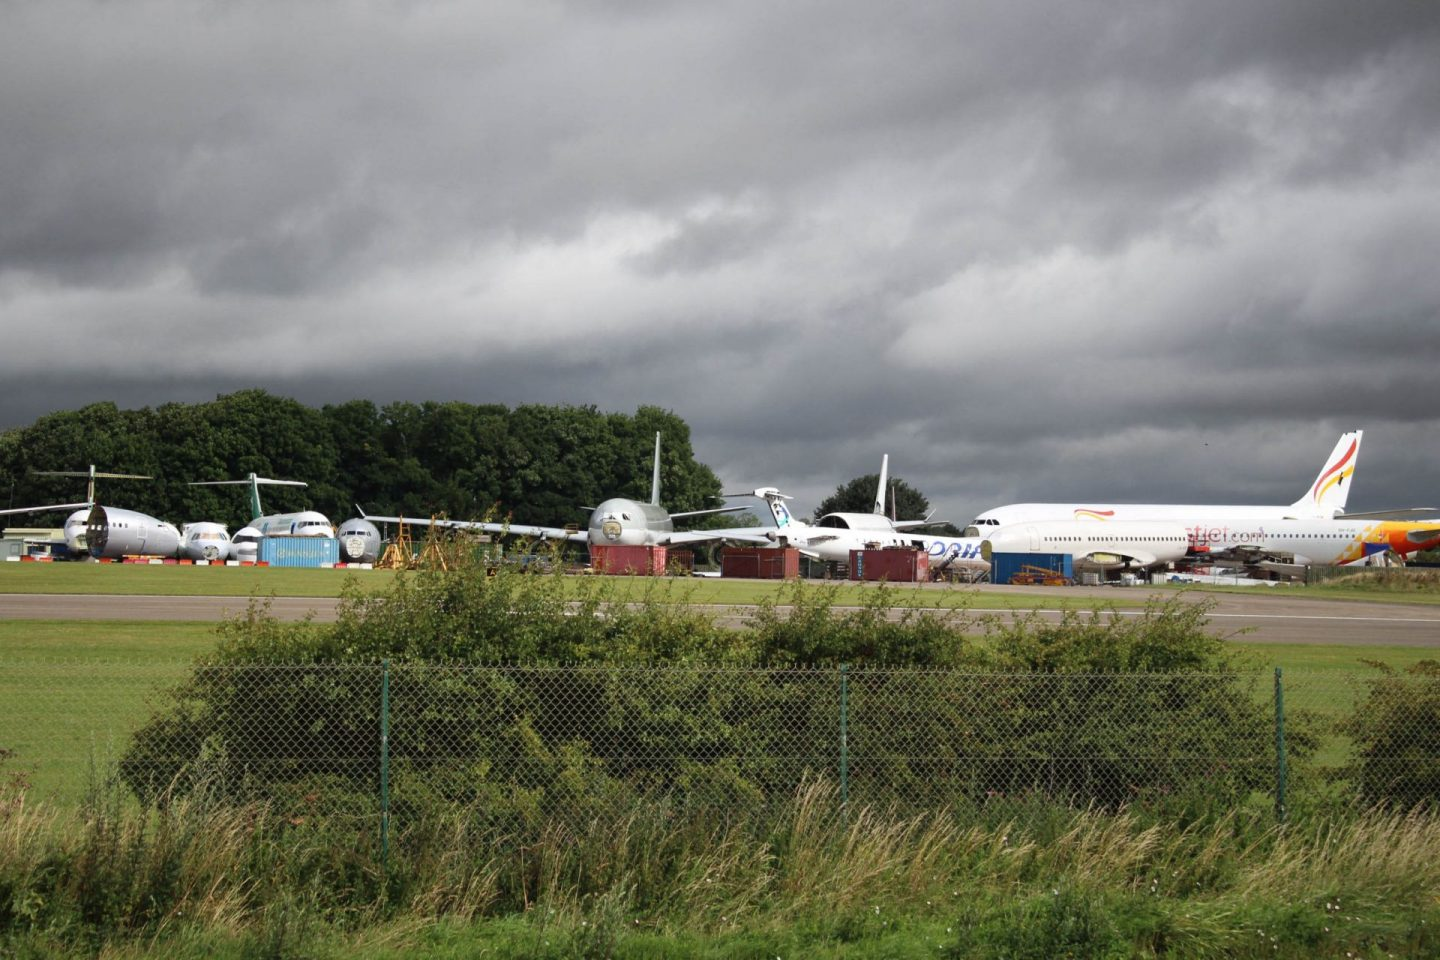 Aircraft going into storage or being decommissioned thanks to the Coronavirus pandemic